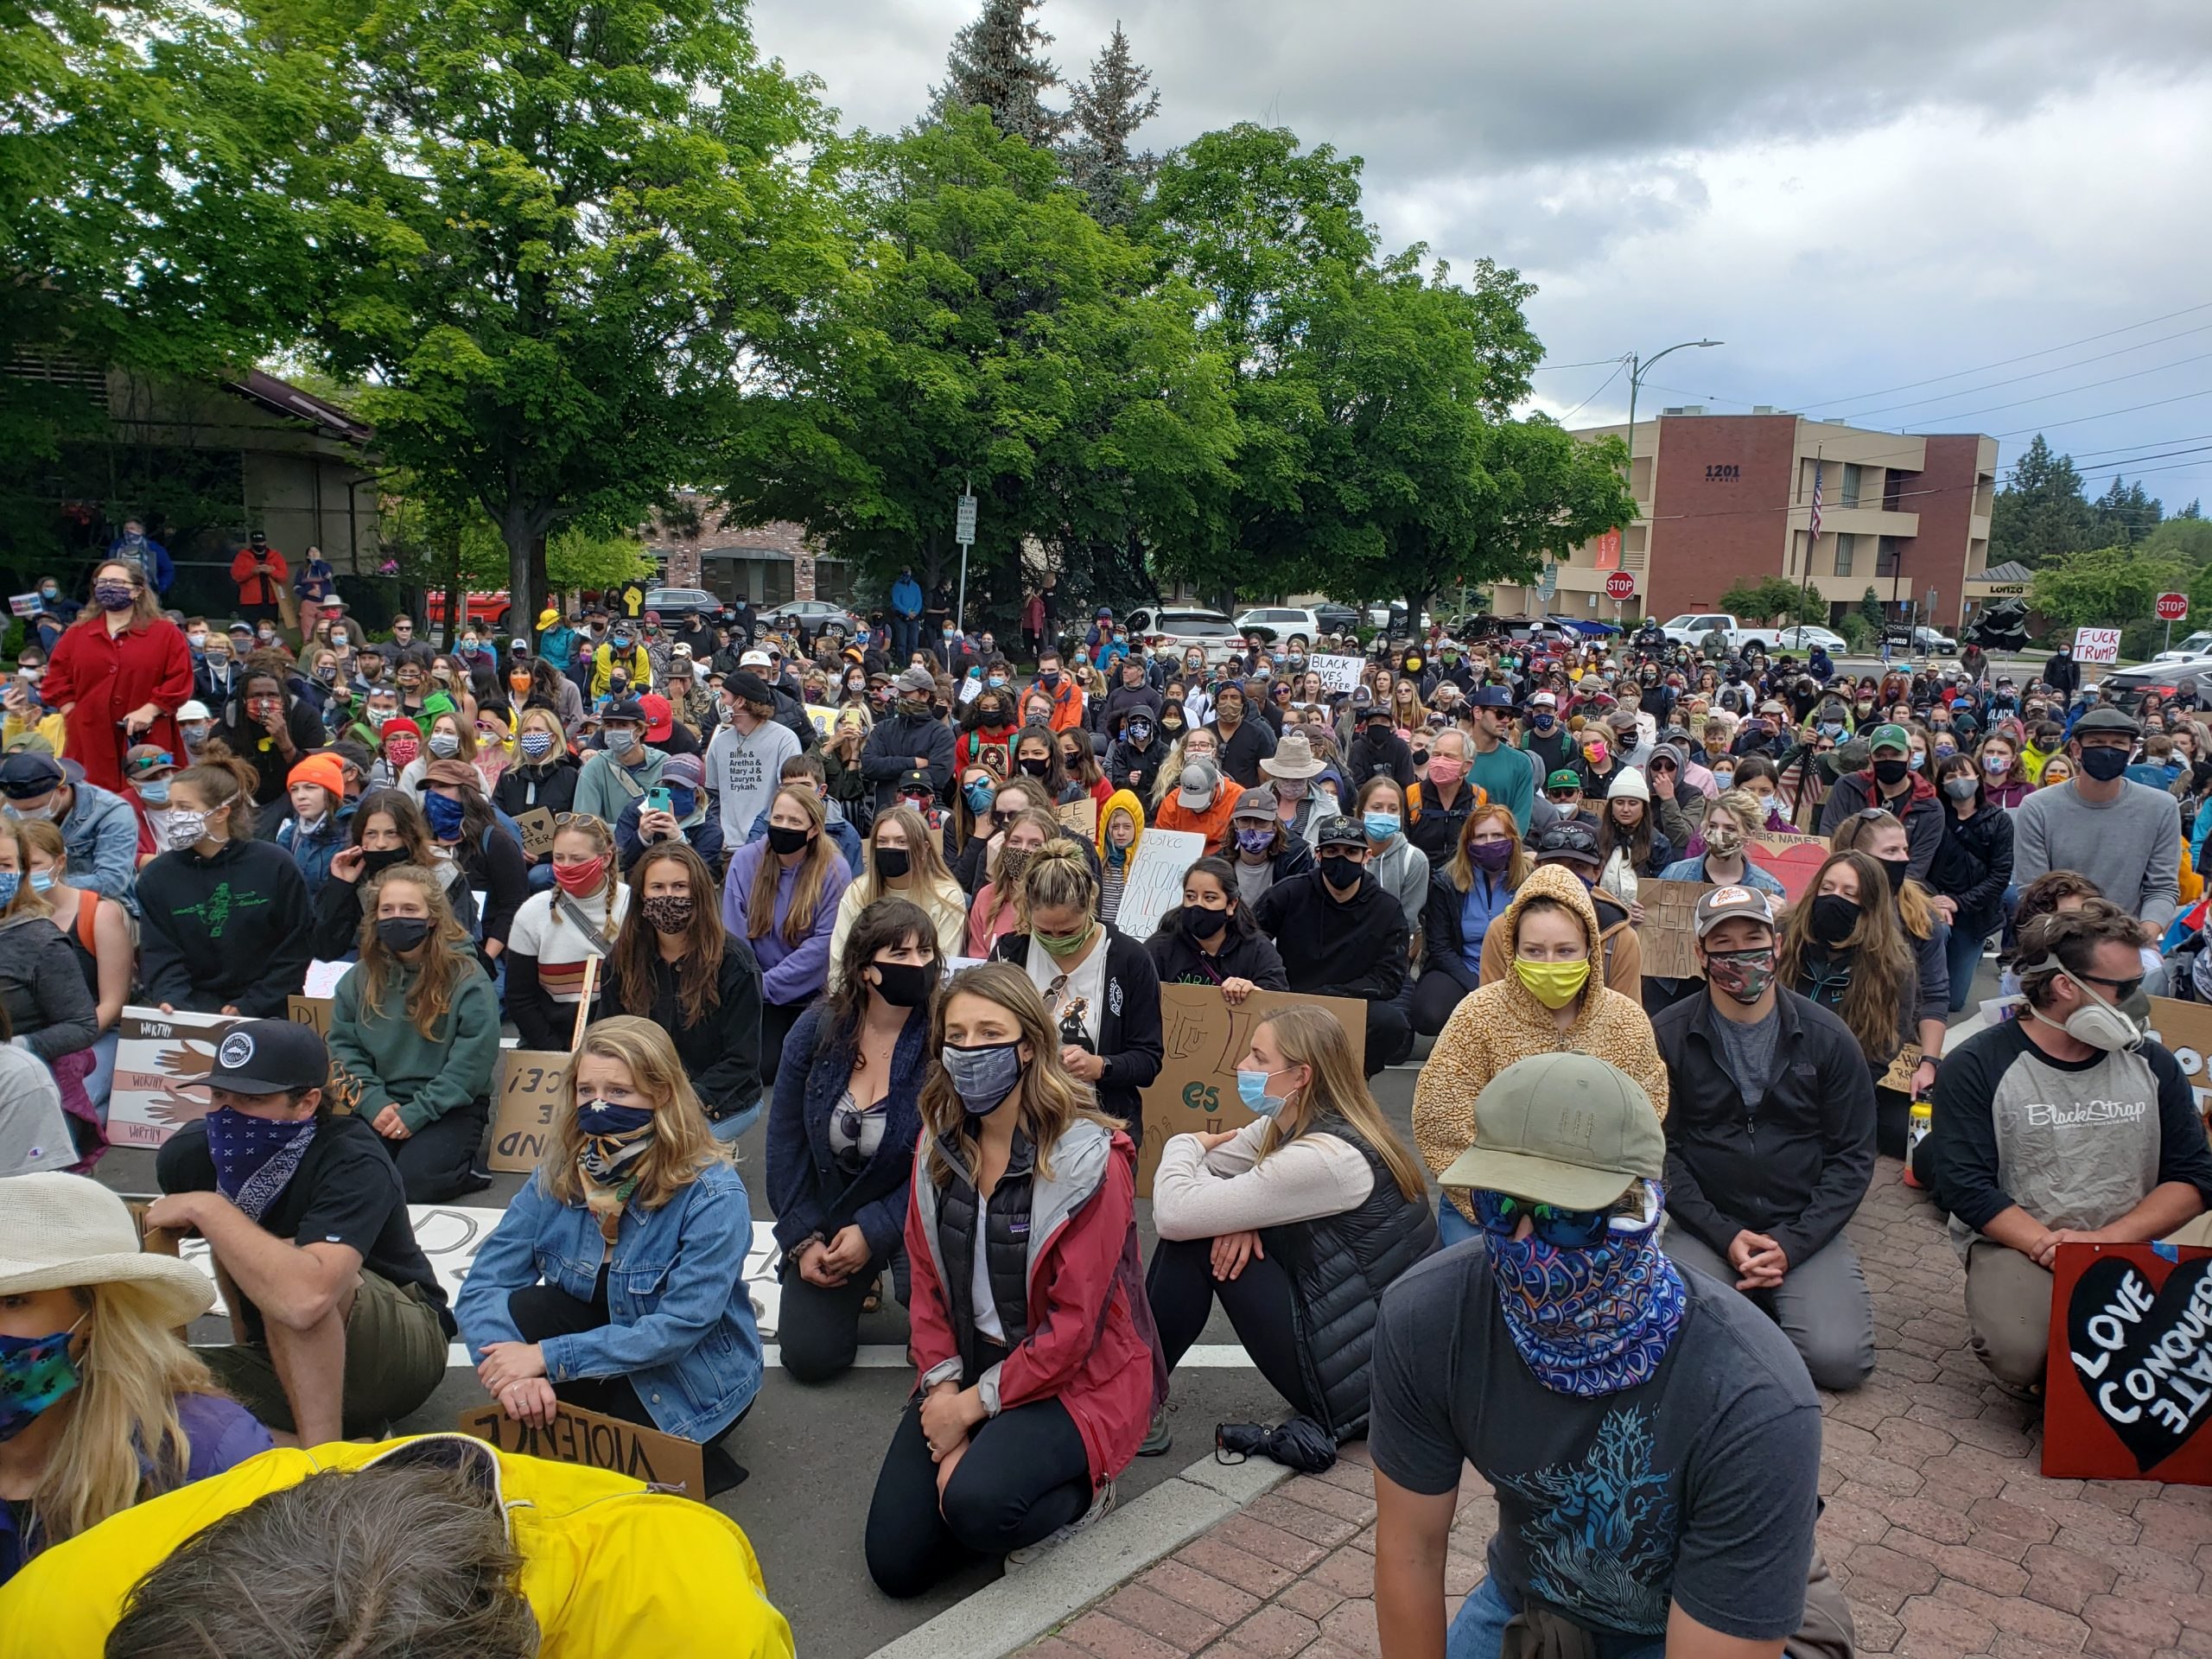 March Against Racism in Bend Oregon